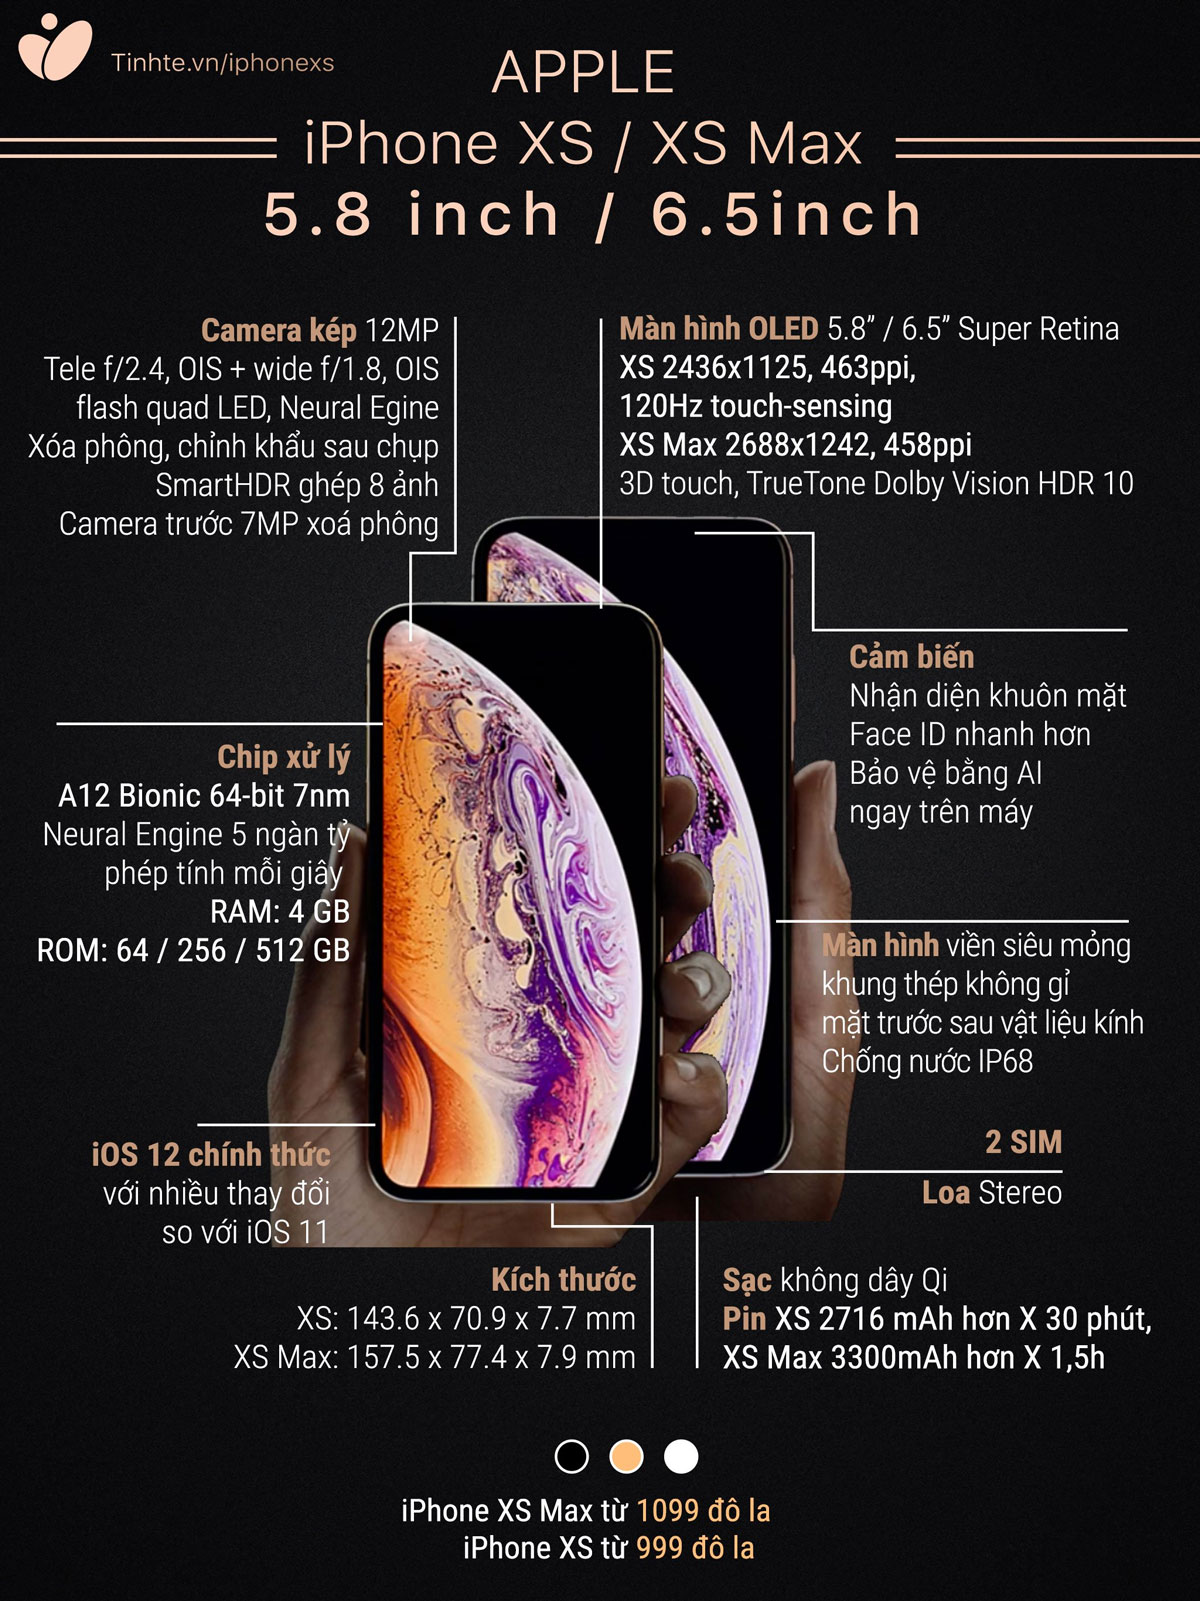 so-sanh-cau-hinh-iphone-xs-voi-iphone-xs-max